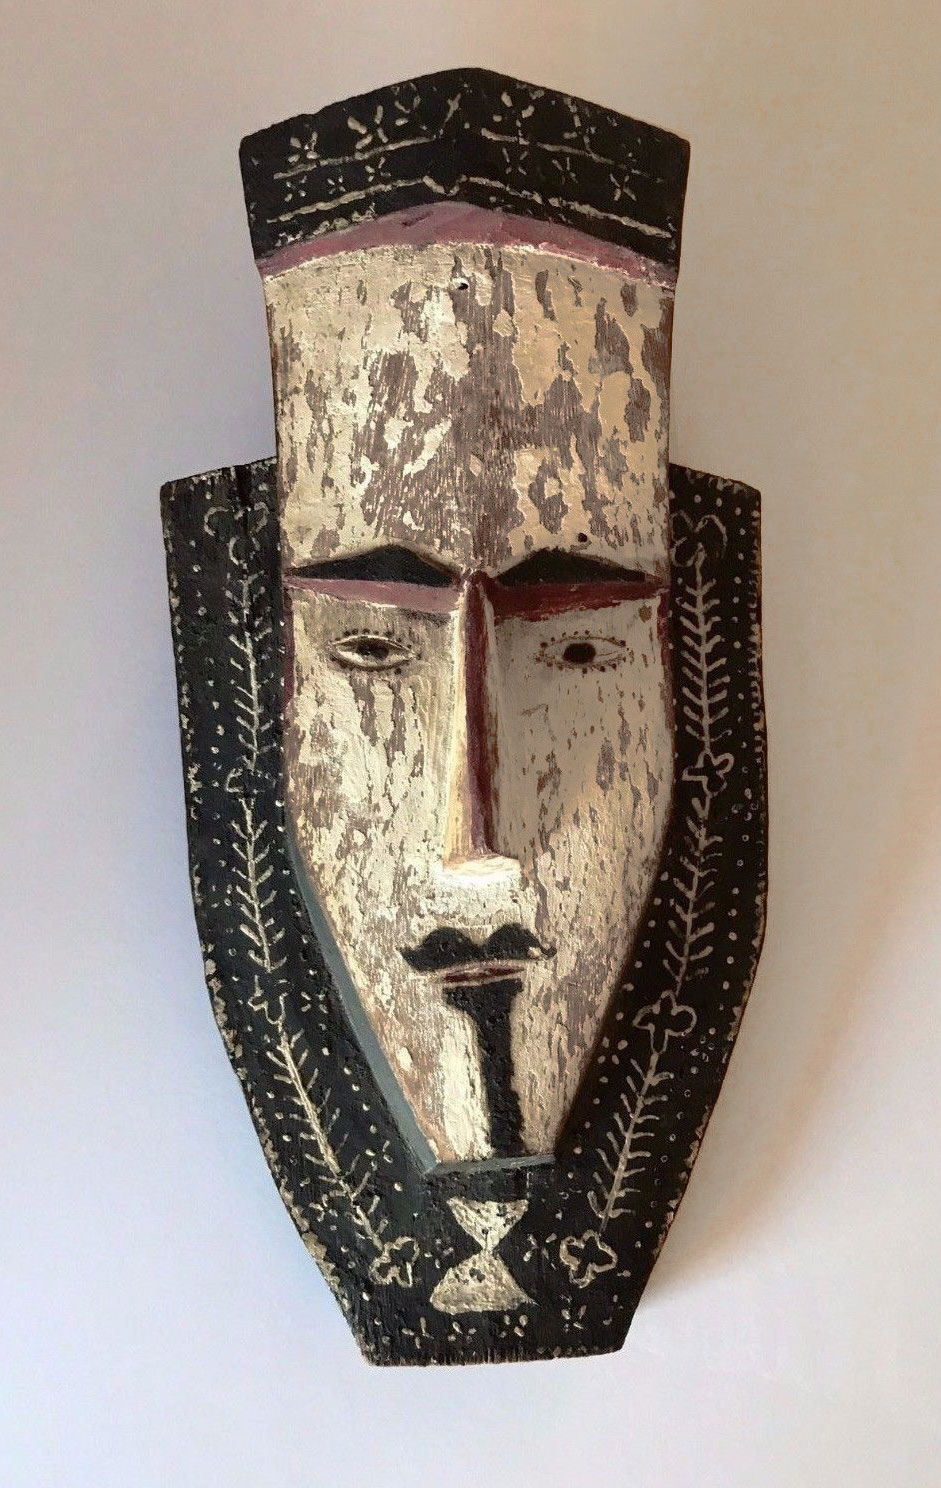 Mortlock Island mask